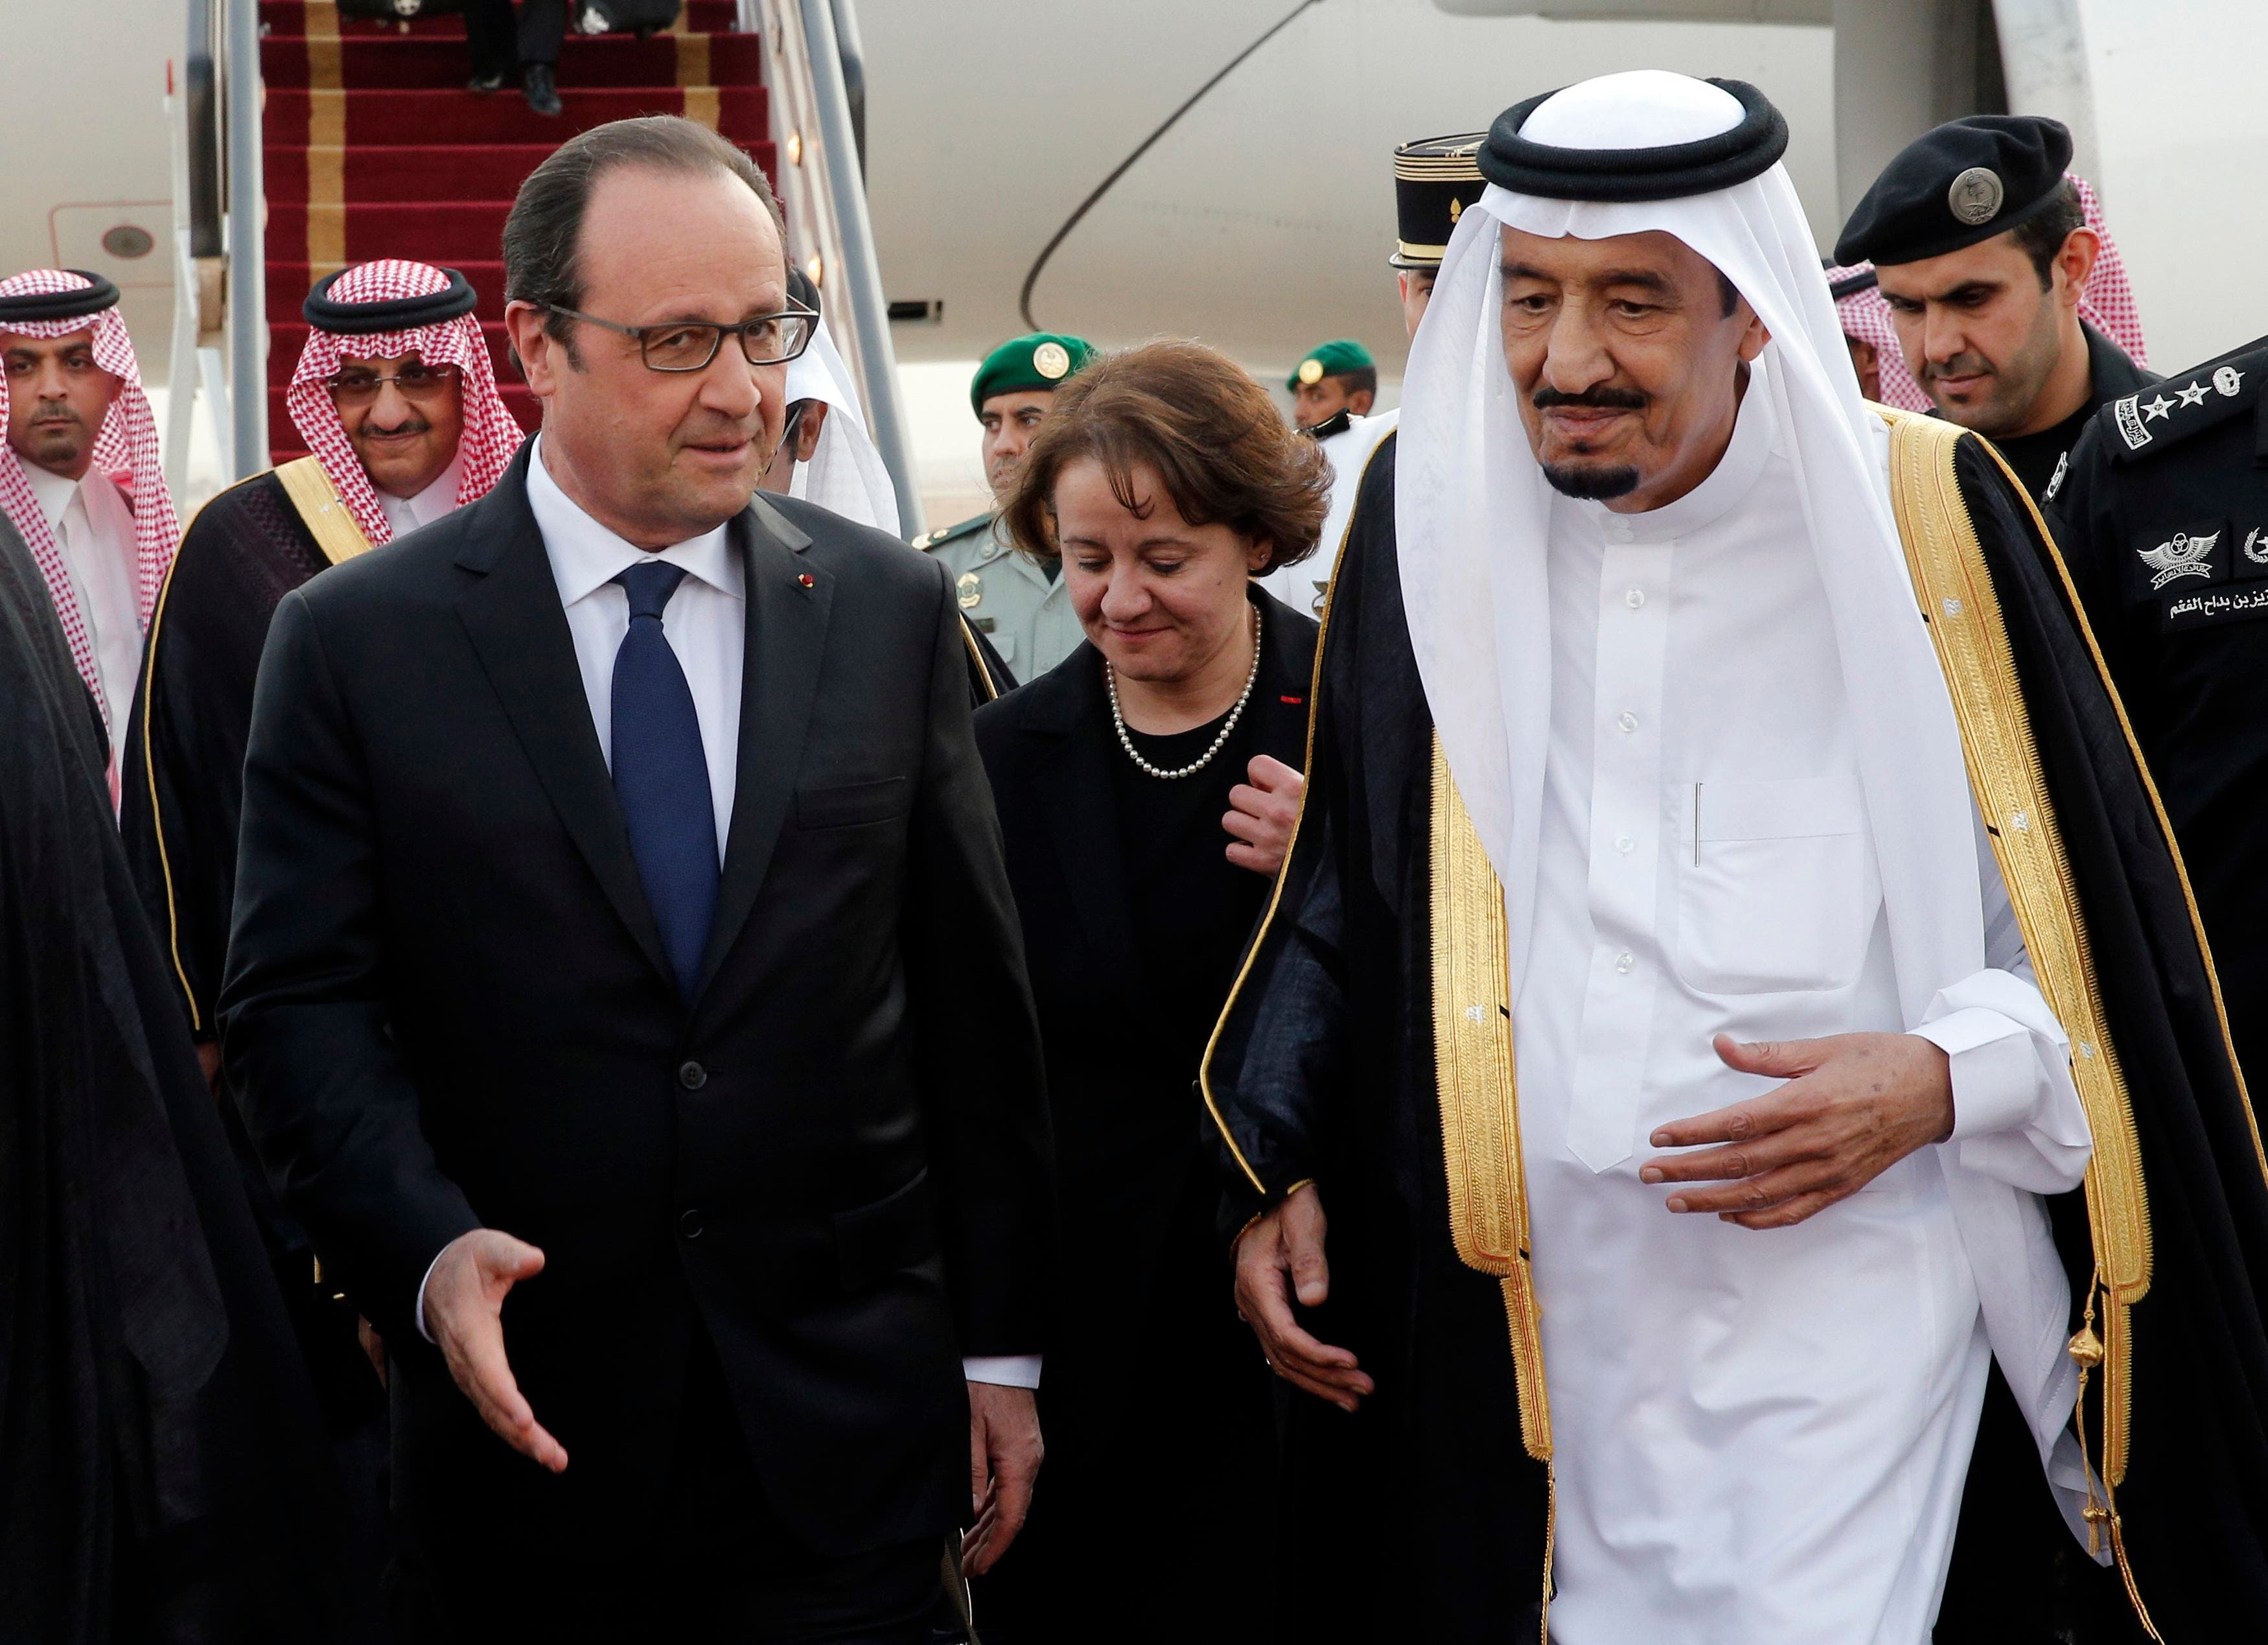 French President Hollande is greeted by Saudi Arabia's King Salman upon his arrival at Riyadh airport Reuters